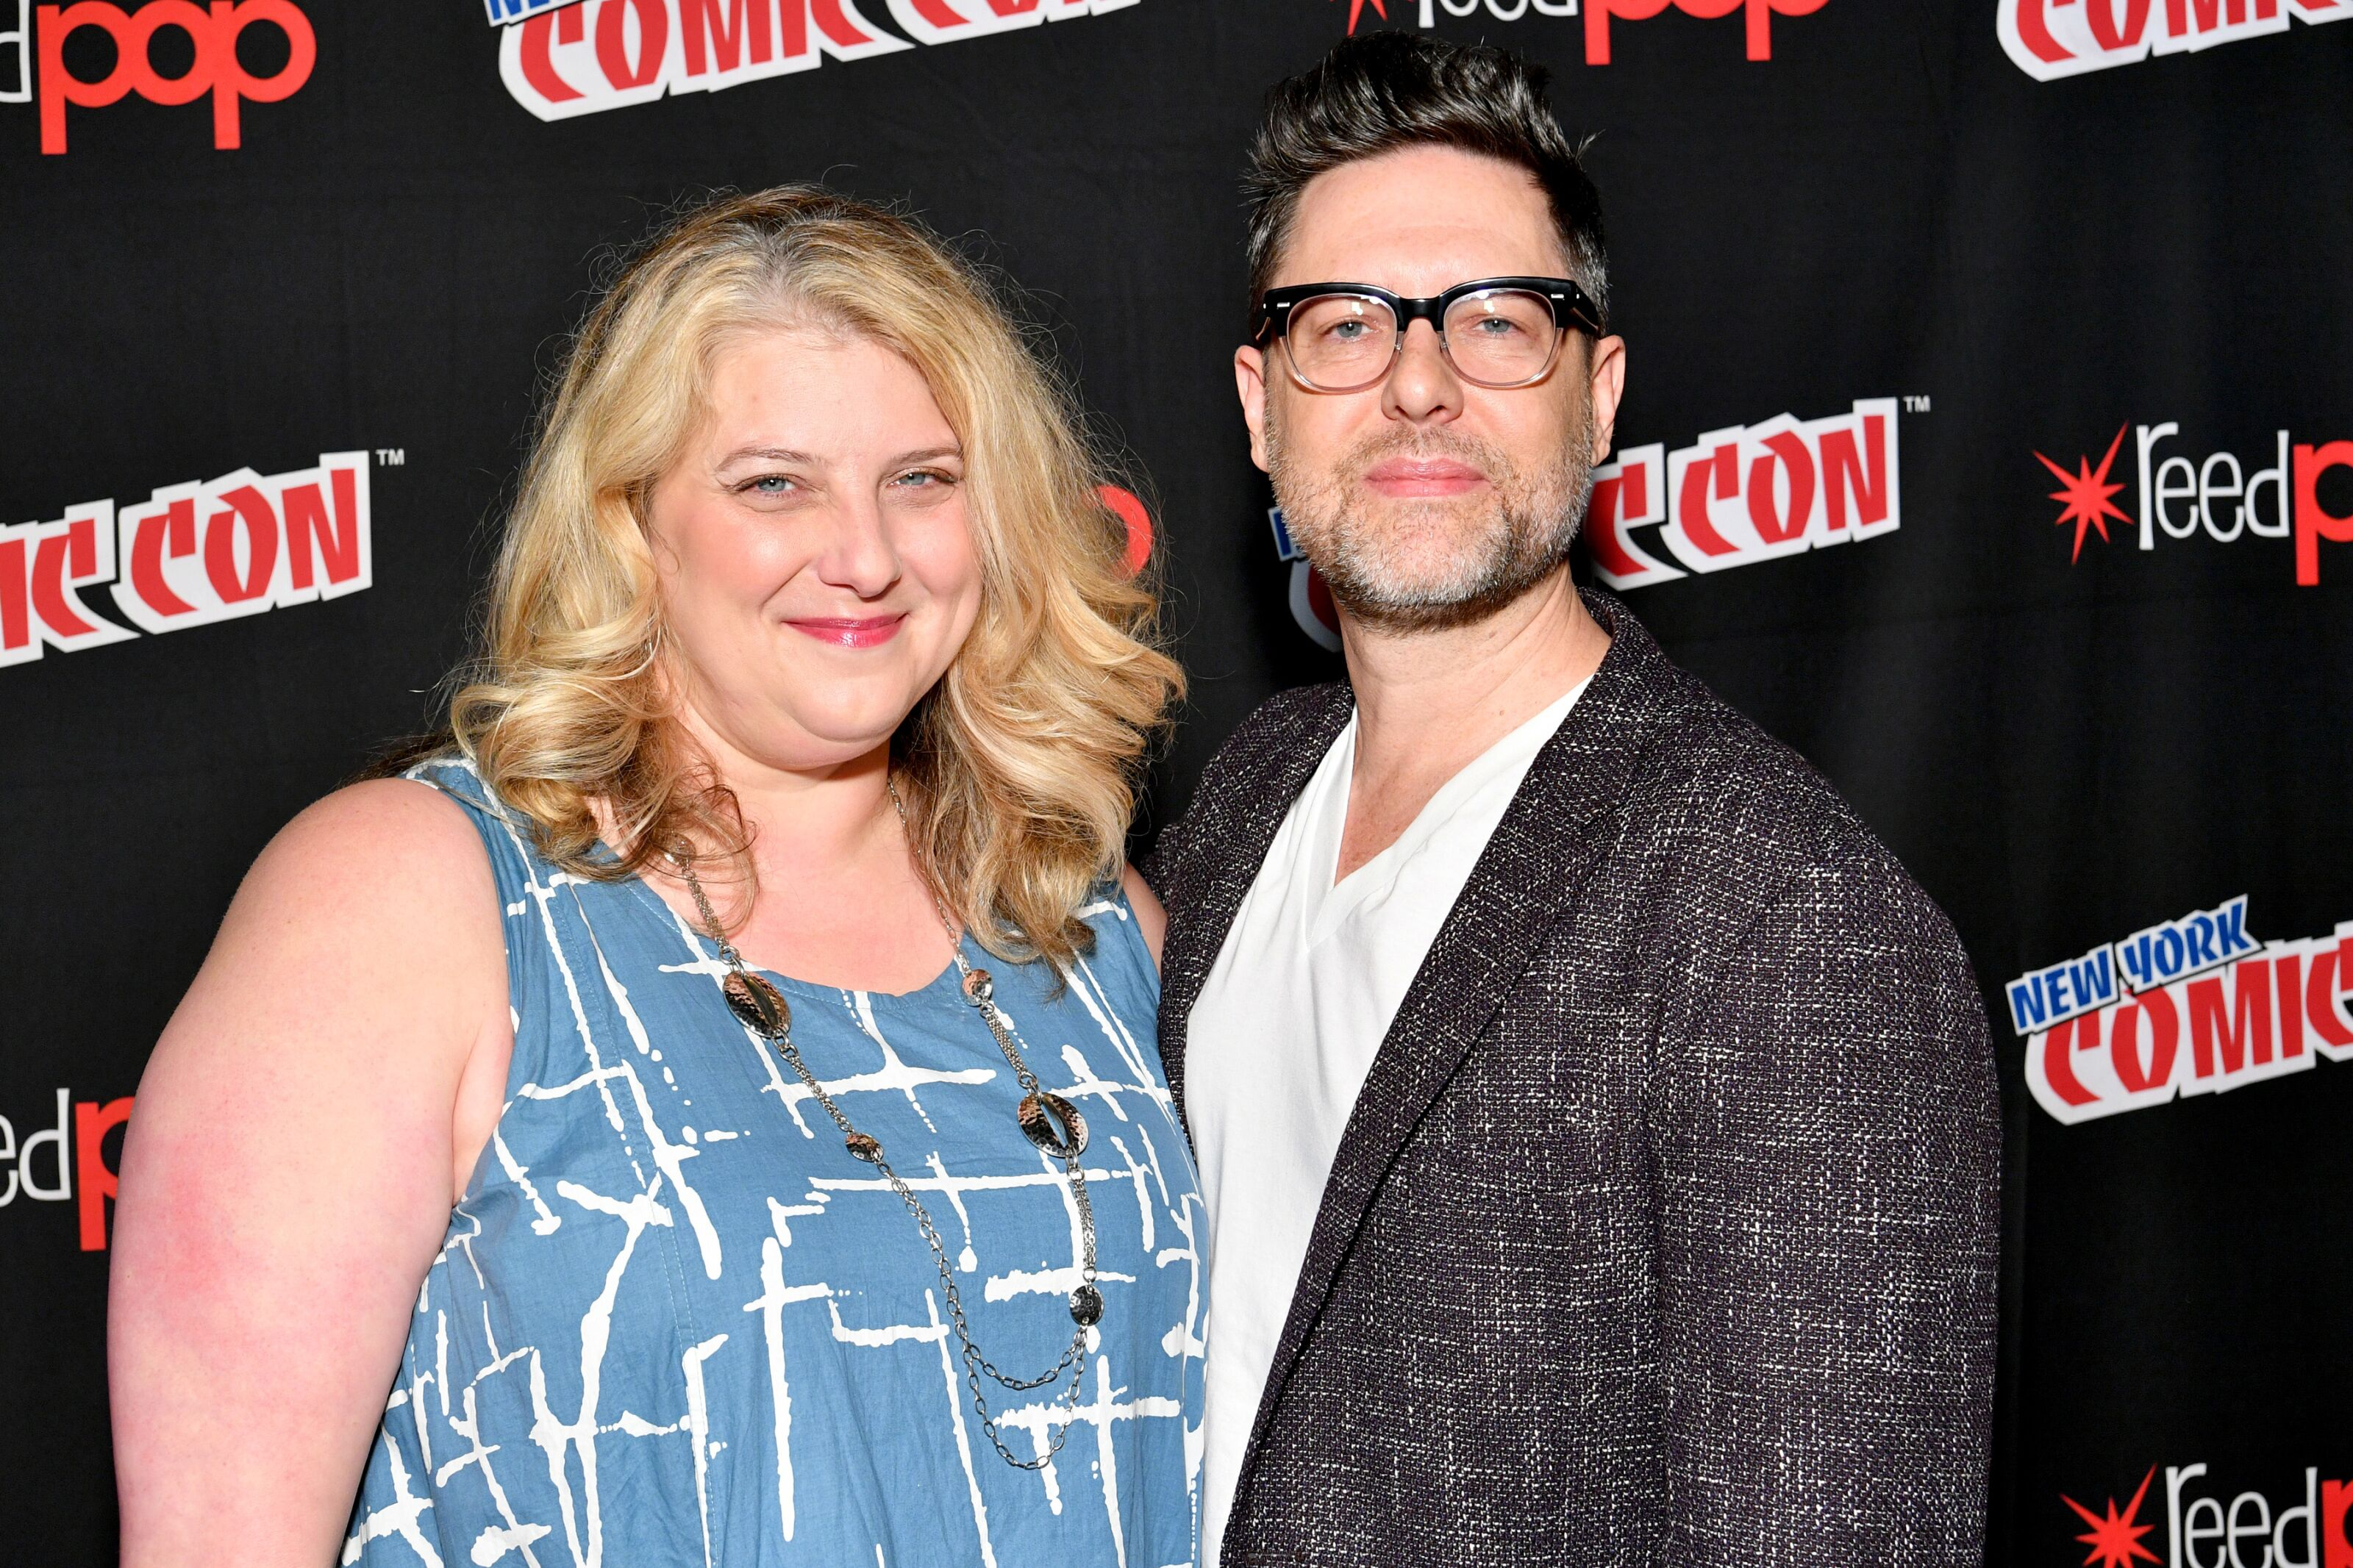 NEW YORK, NY - OCTOBER 07: Executive Producers Gretchen J. Berg and Aaron Harberts attend the Star Trek: Discovery panel during 2017 New York Comic Con - Day 3 at Theater at Madison Square Gardenon October 7, 2017 in New York City. (Photo by Dia Dipasupil/Getty Images)